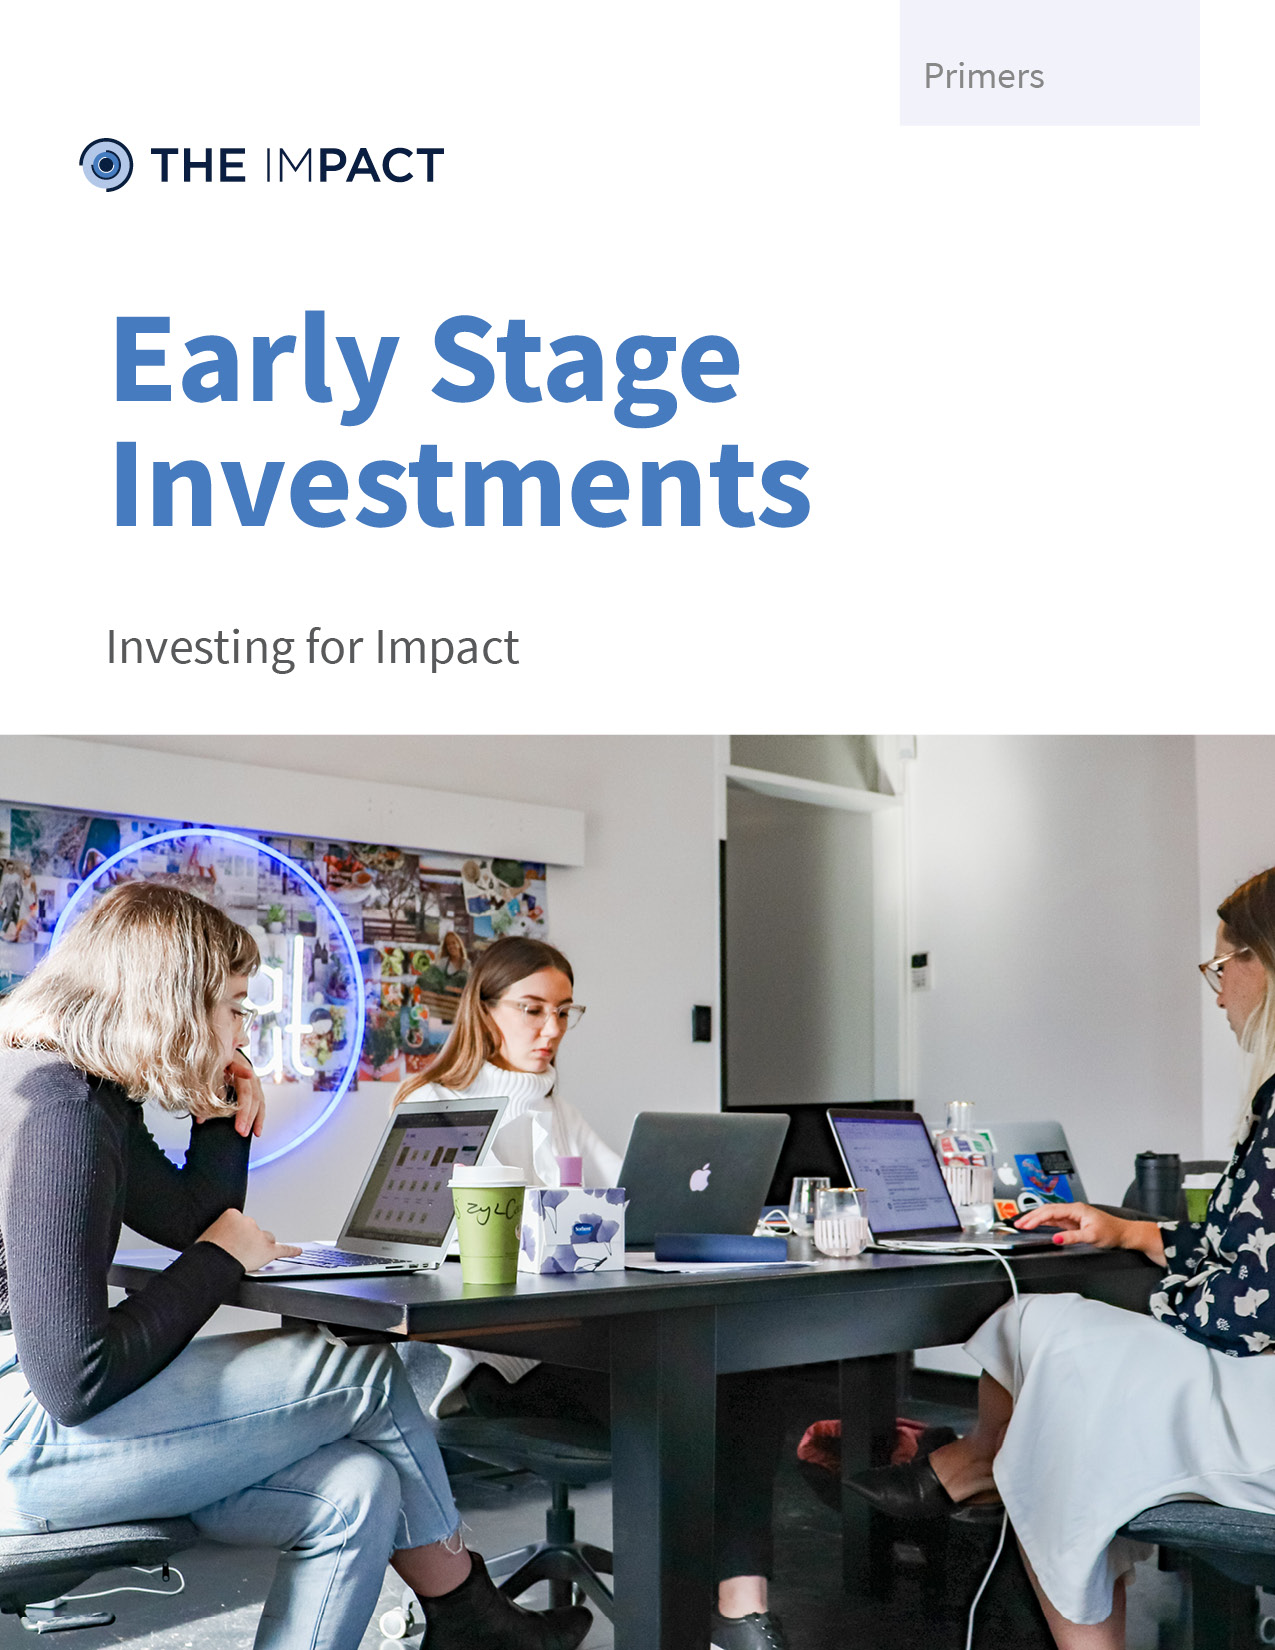 Early Stage Investments. A primer by The ImPact.